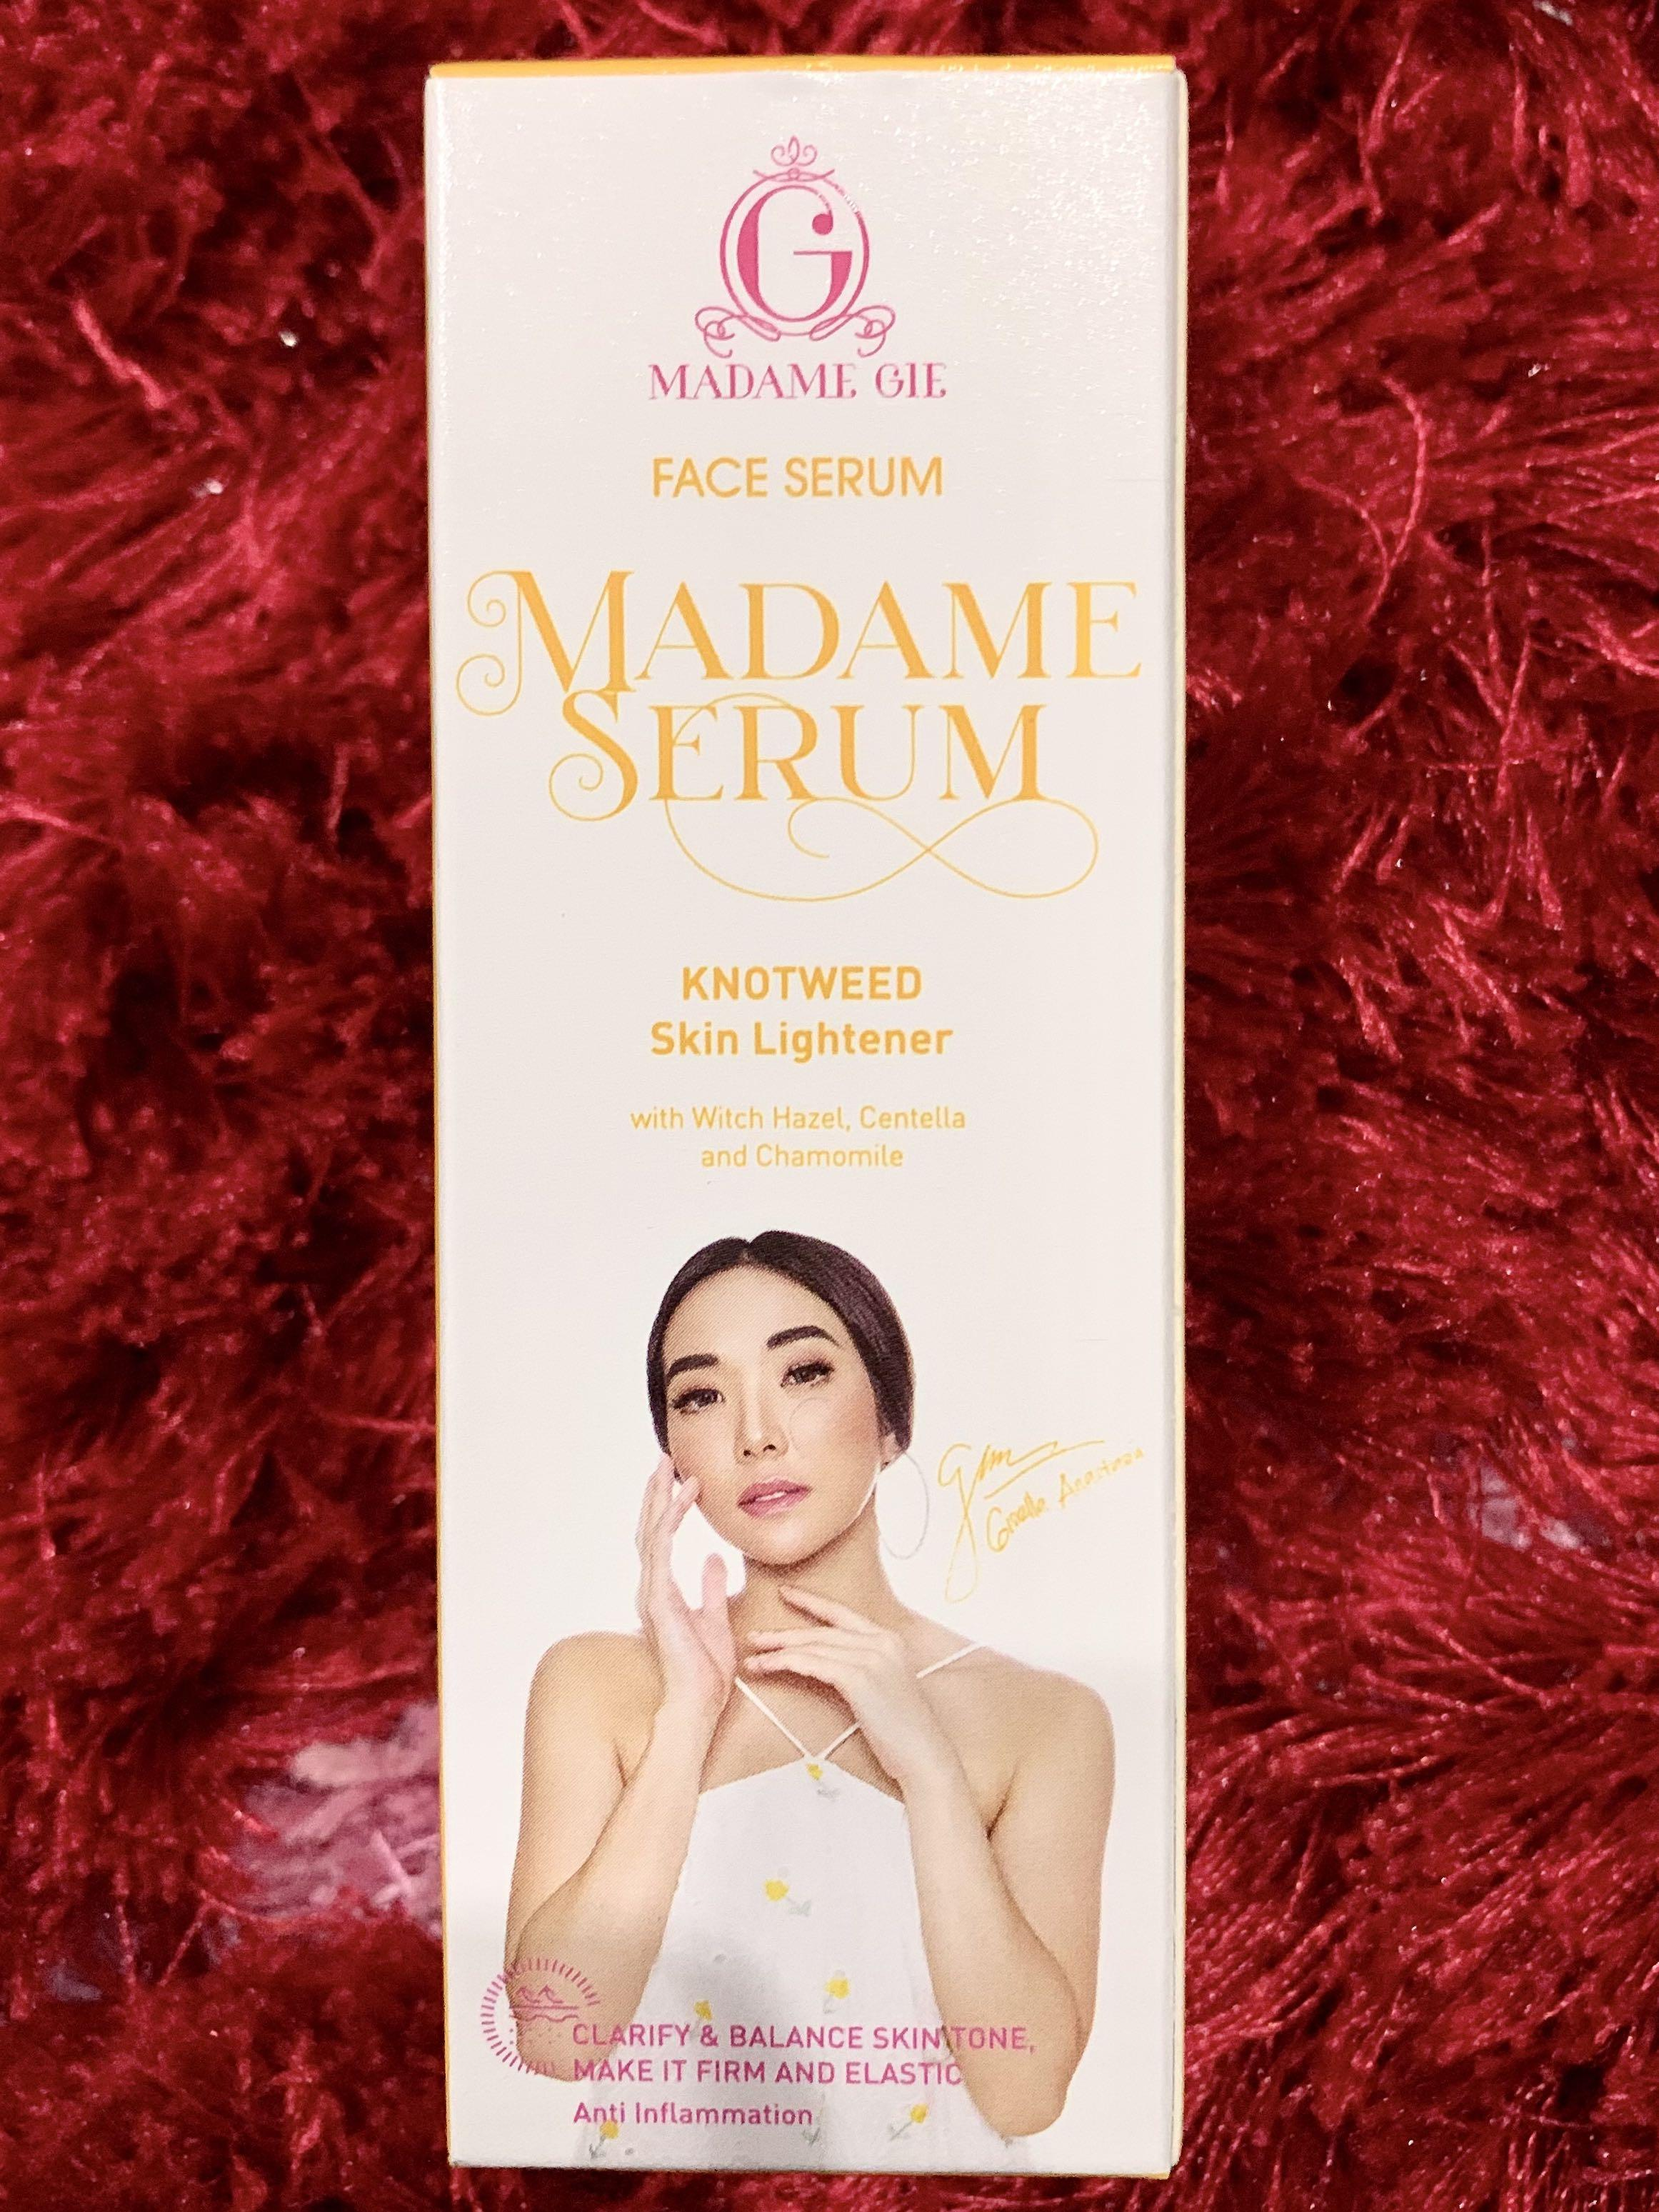 MADAME GIE SERUM